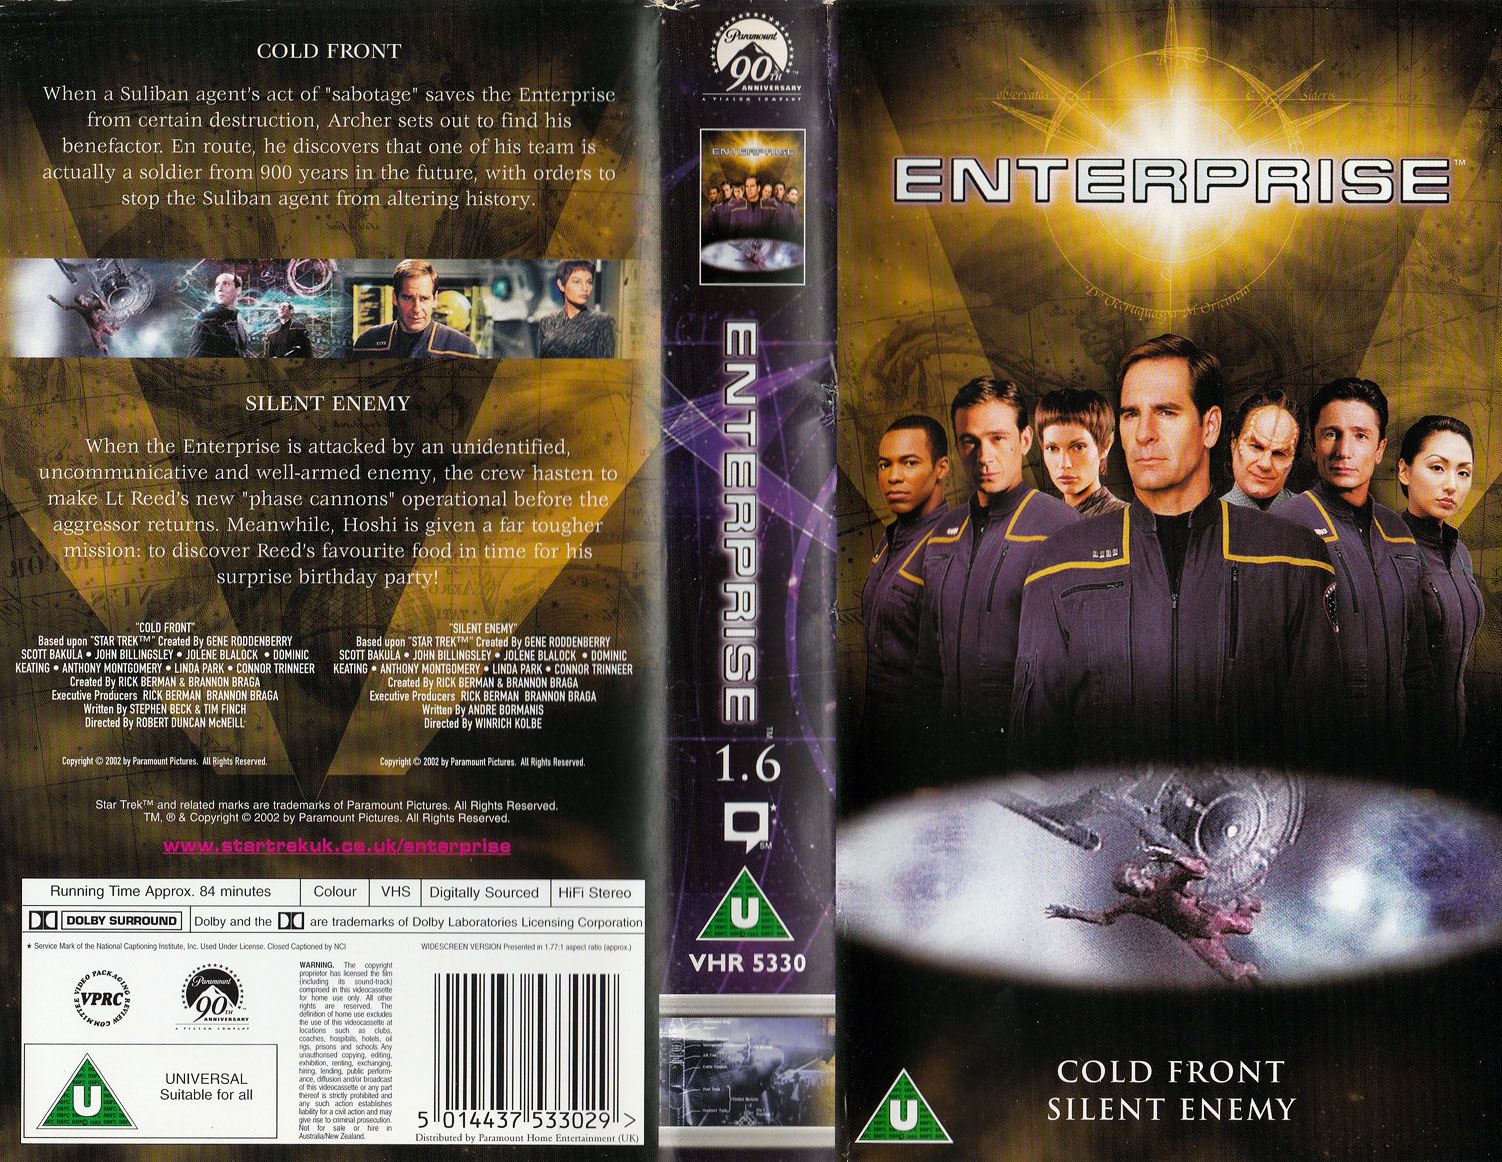 star trek dating uk Trek tv and cinema subjects not related to any specific series or movie.